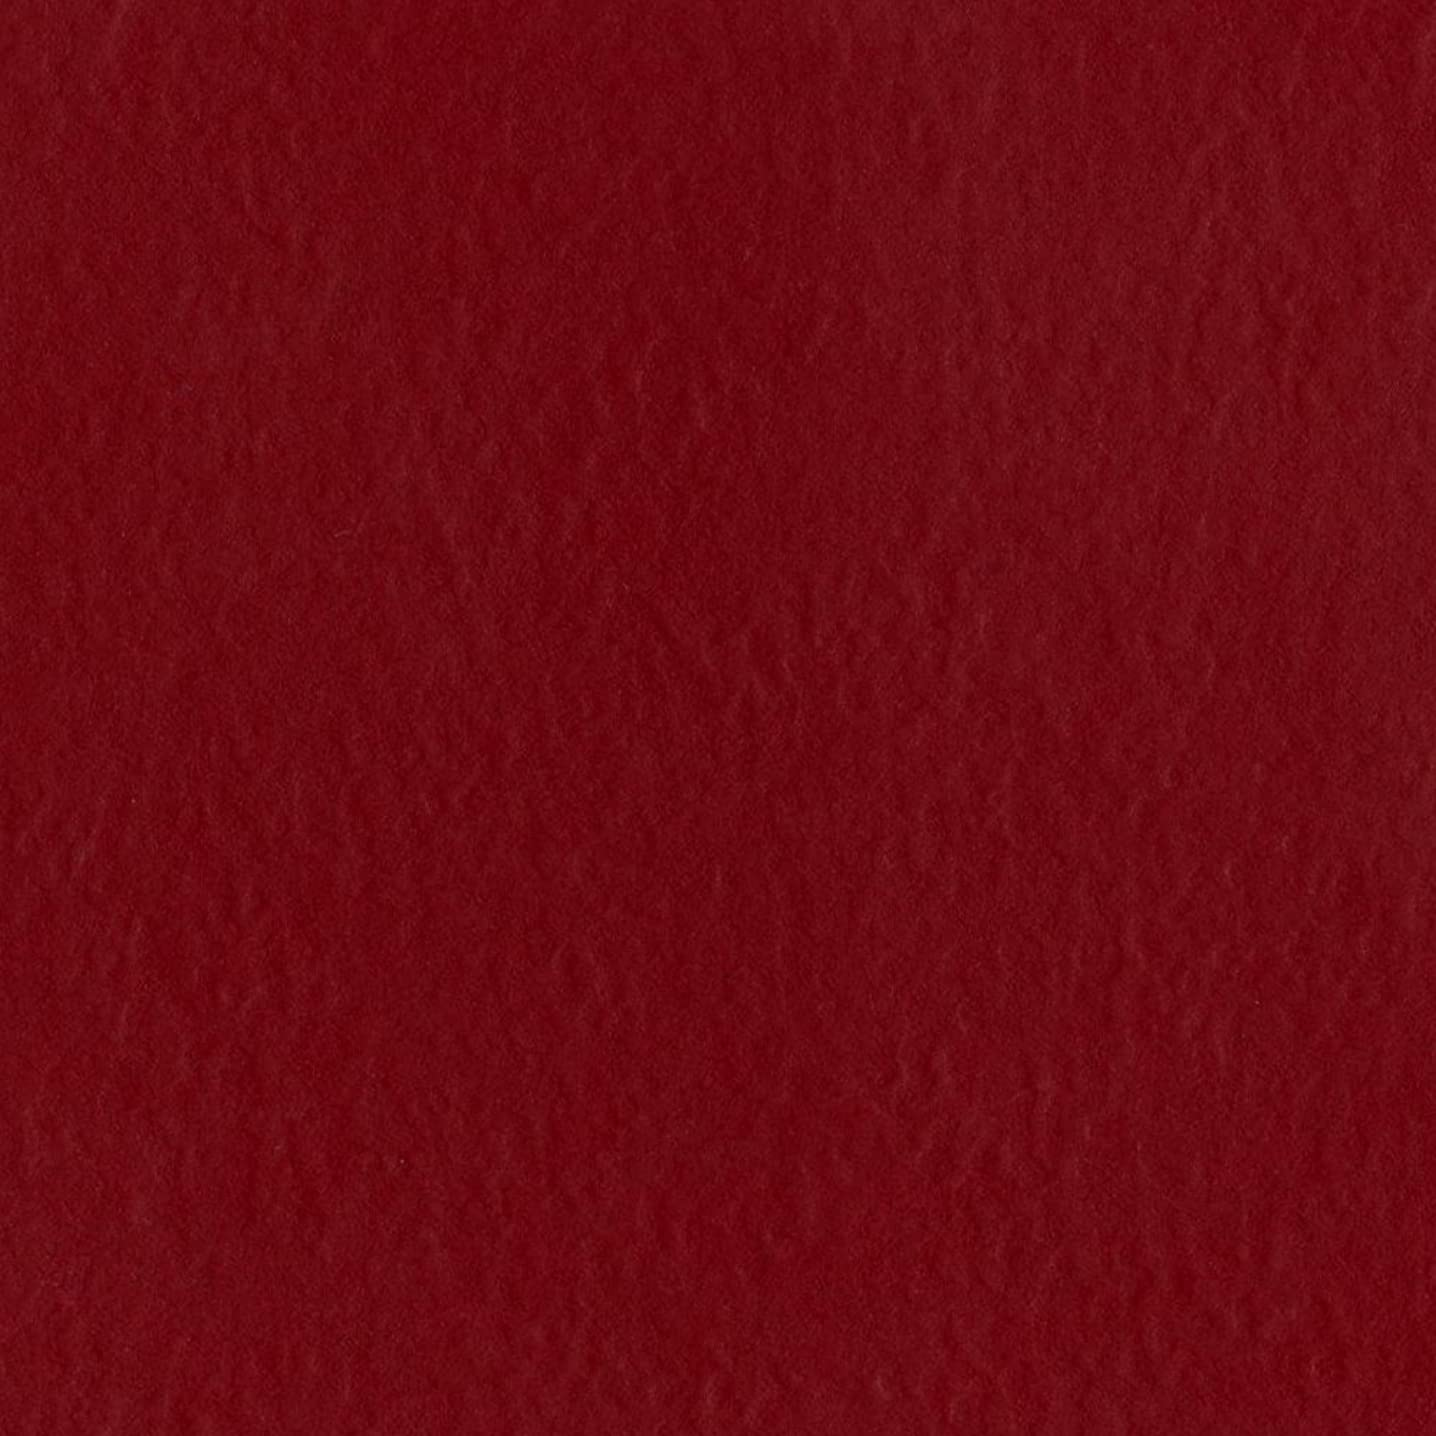 Bazzill Basics 19-2049 Prismatic Cardstock, Blush Red, 25 Sheet Pack, 8.5 x 11 Inches